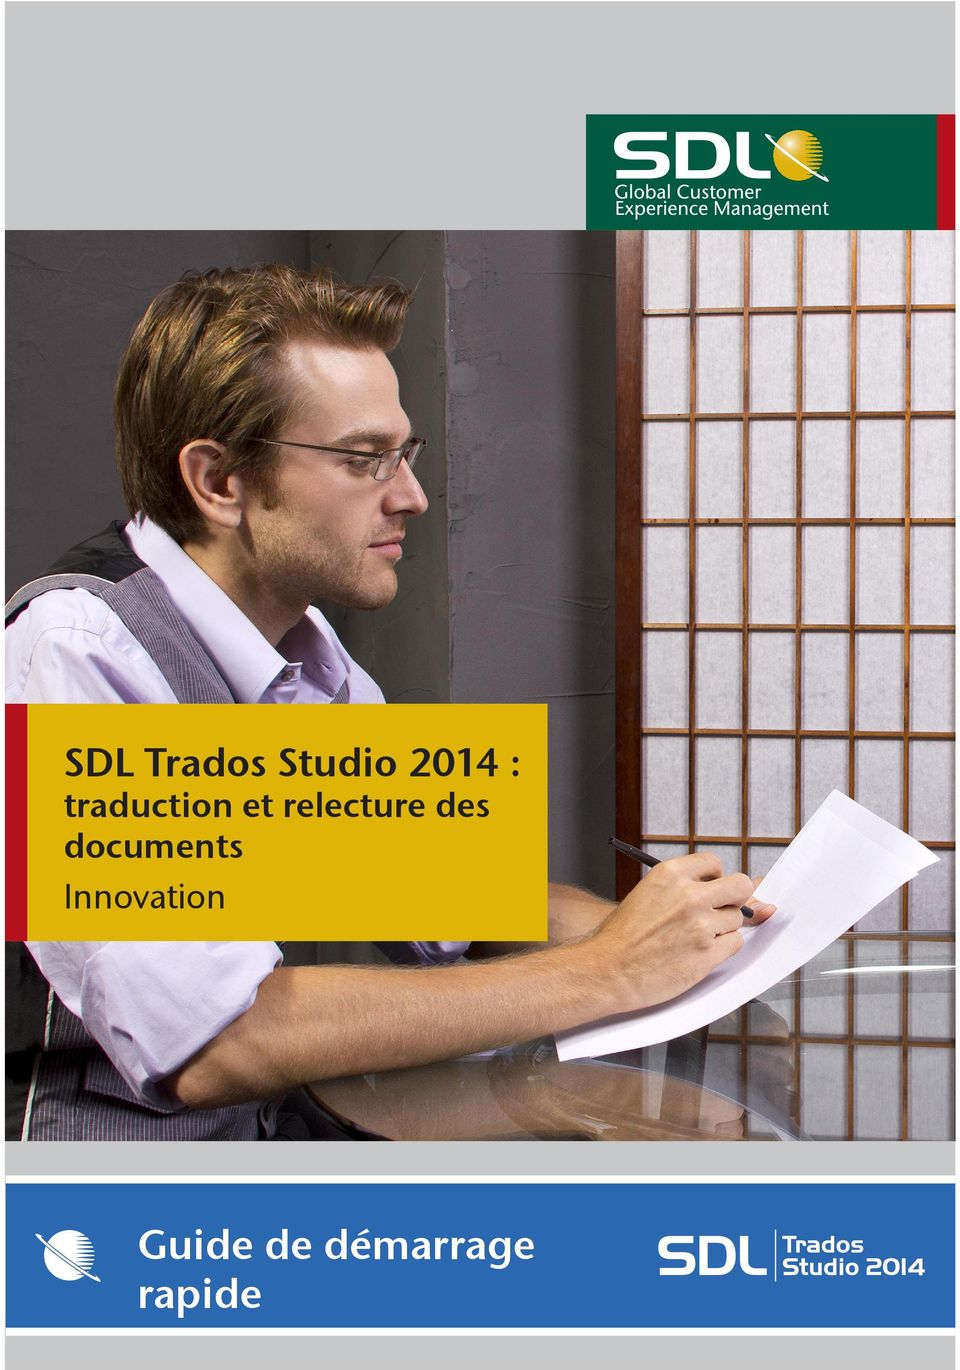 des documents Innovation